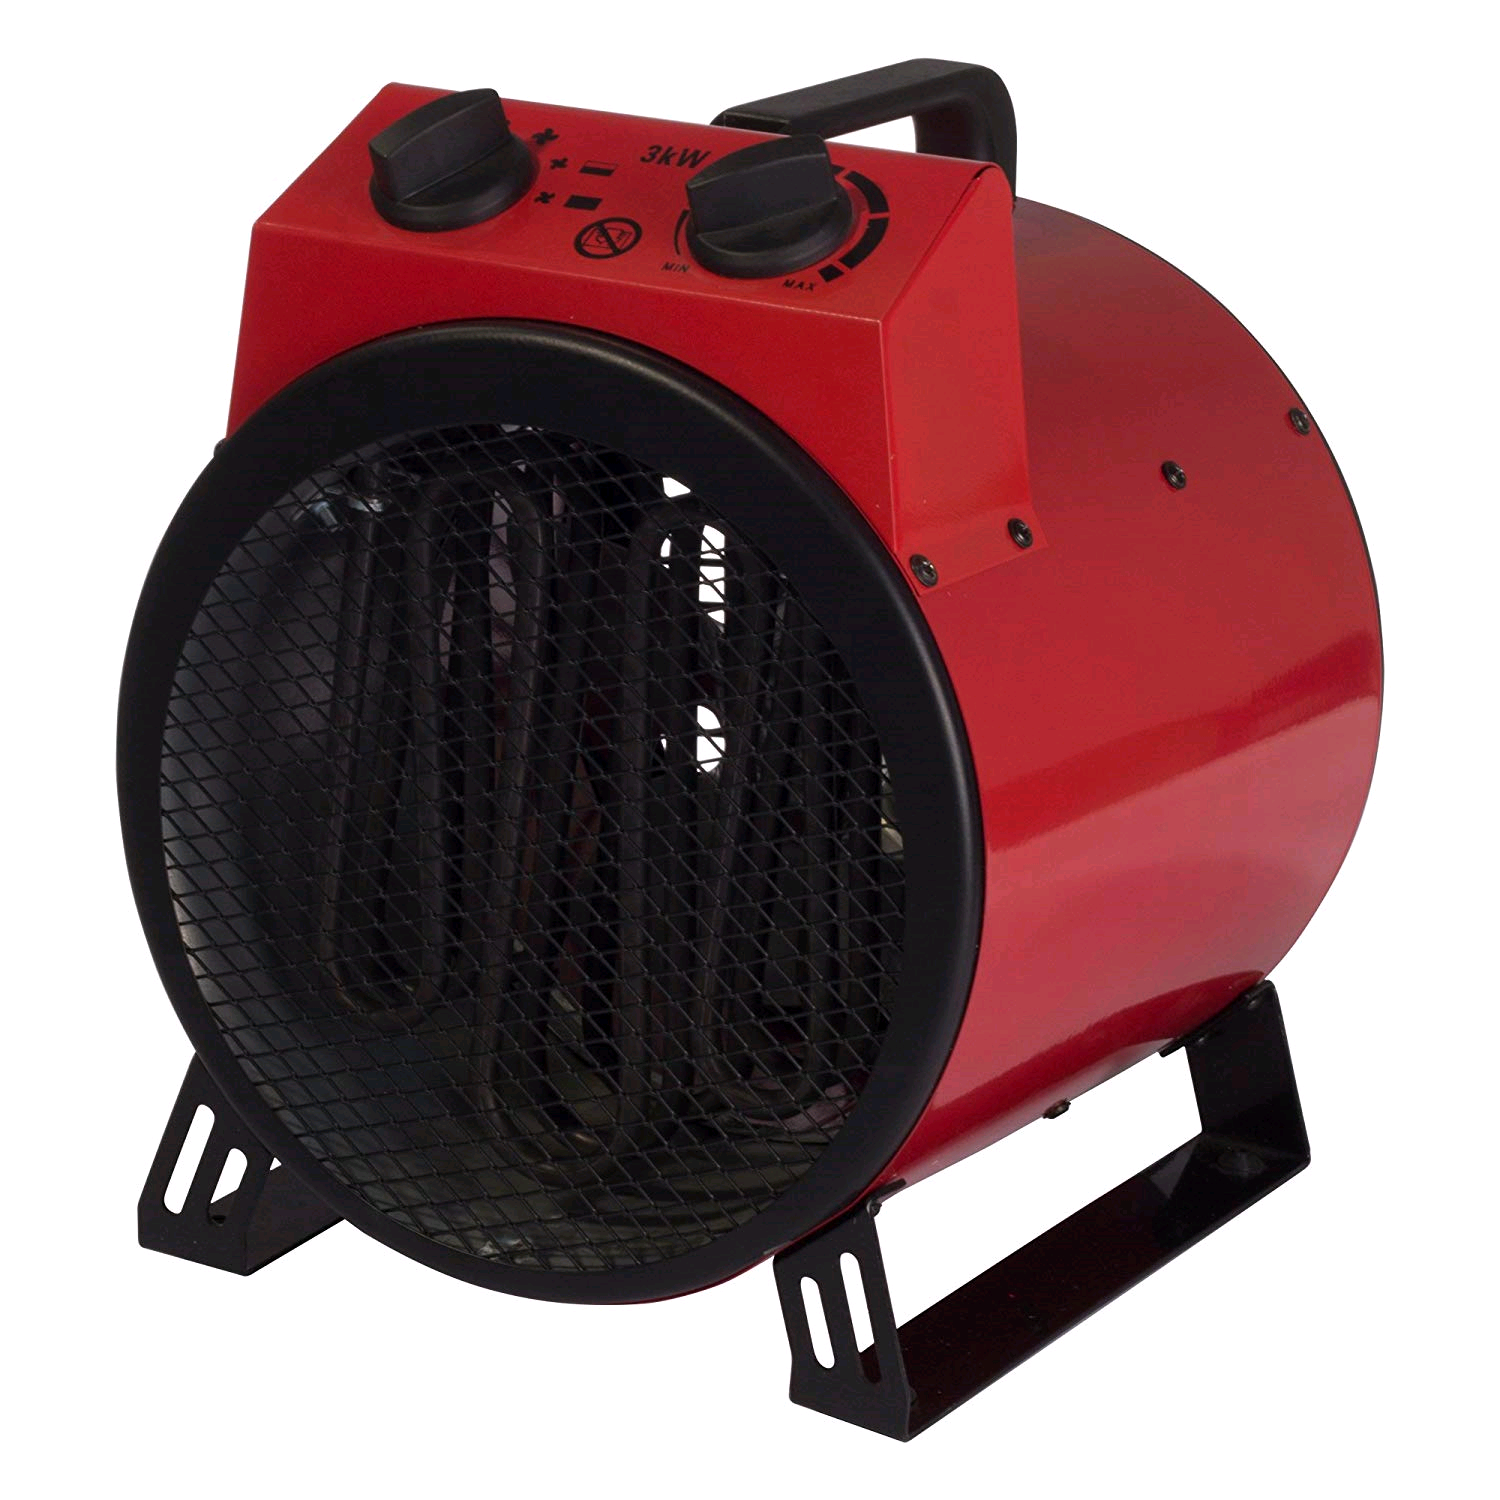 Igenix 3Kw Industrial Drum Heater